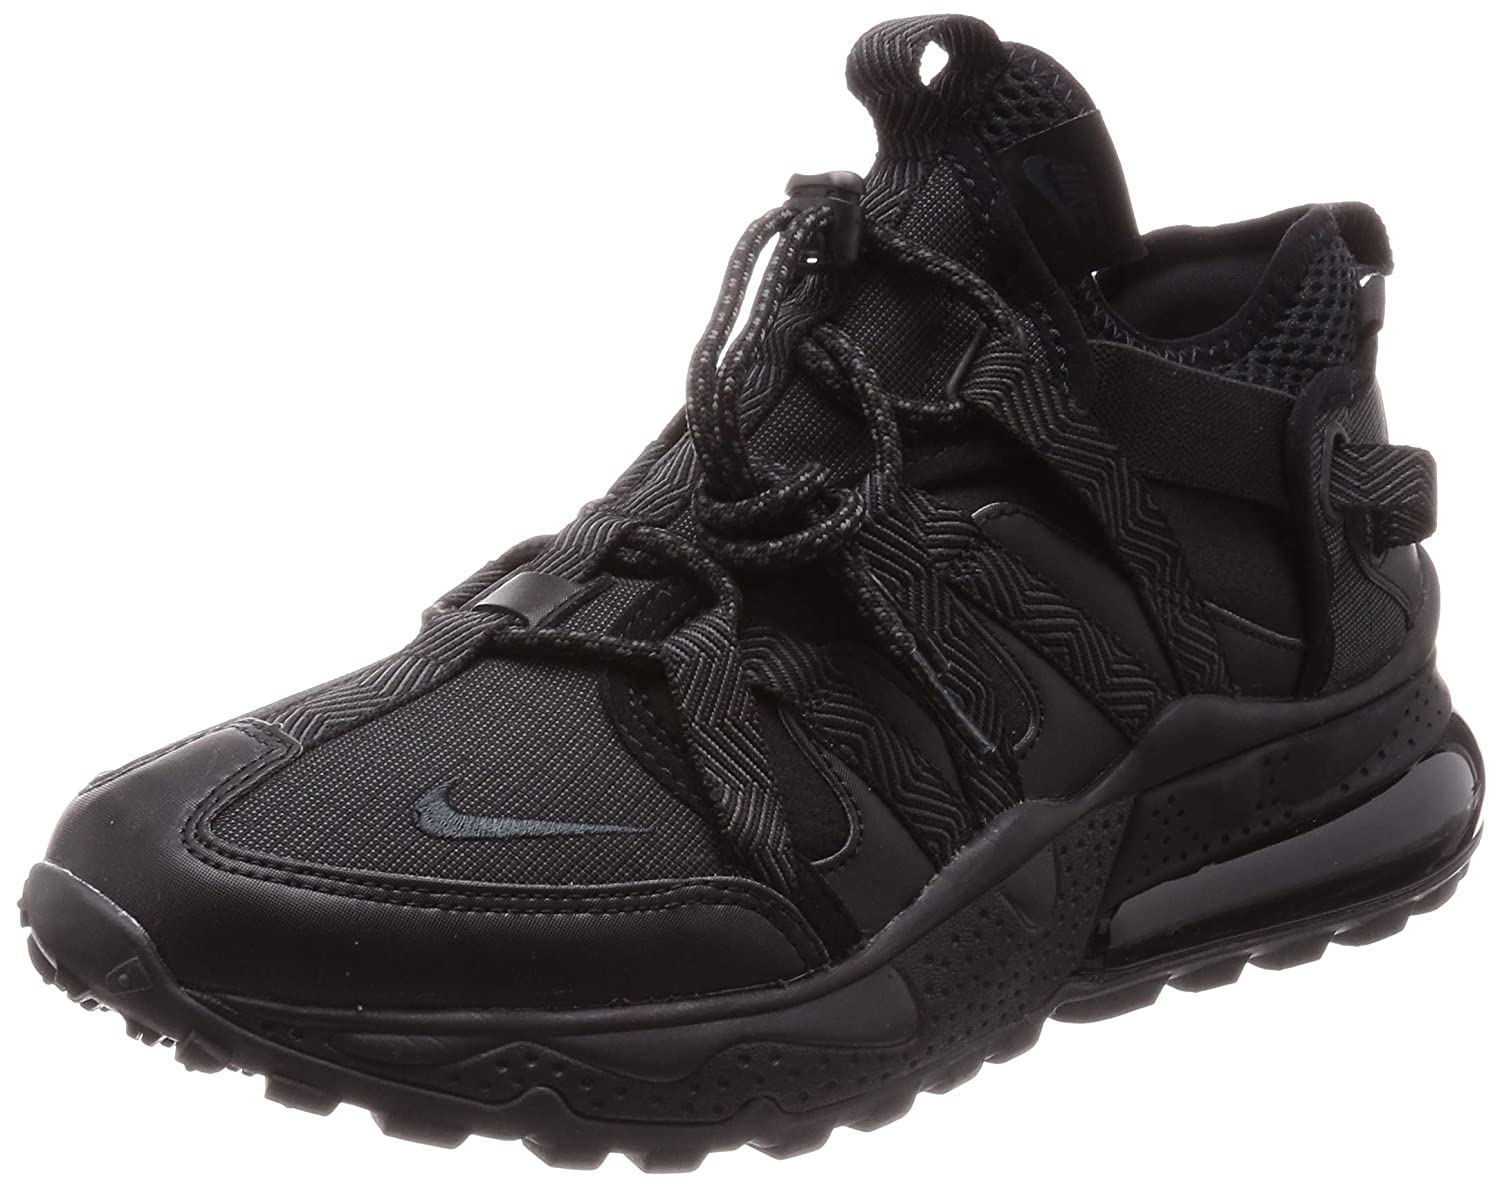 uk availability 39df7 6a843 Amazon.com | Nike Mens Air Max 270 Bowfin Black/Anthracite ...